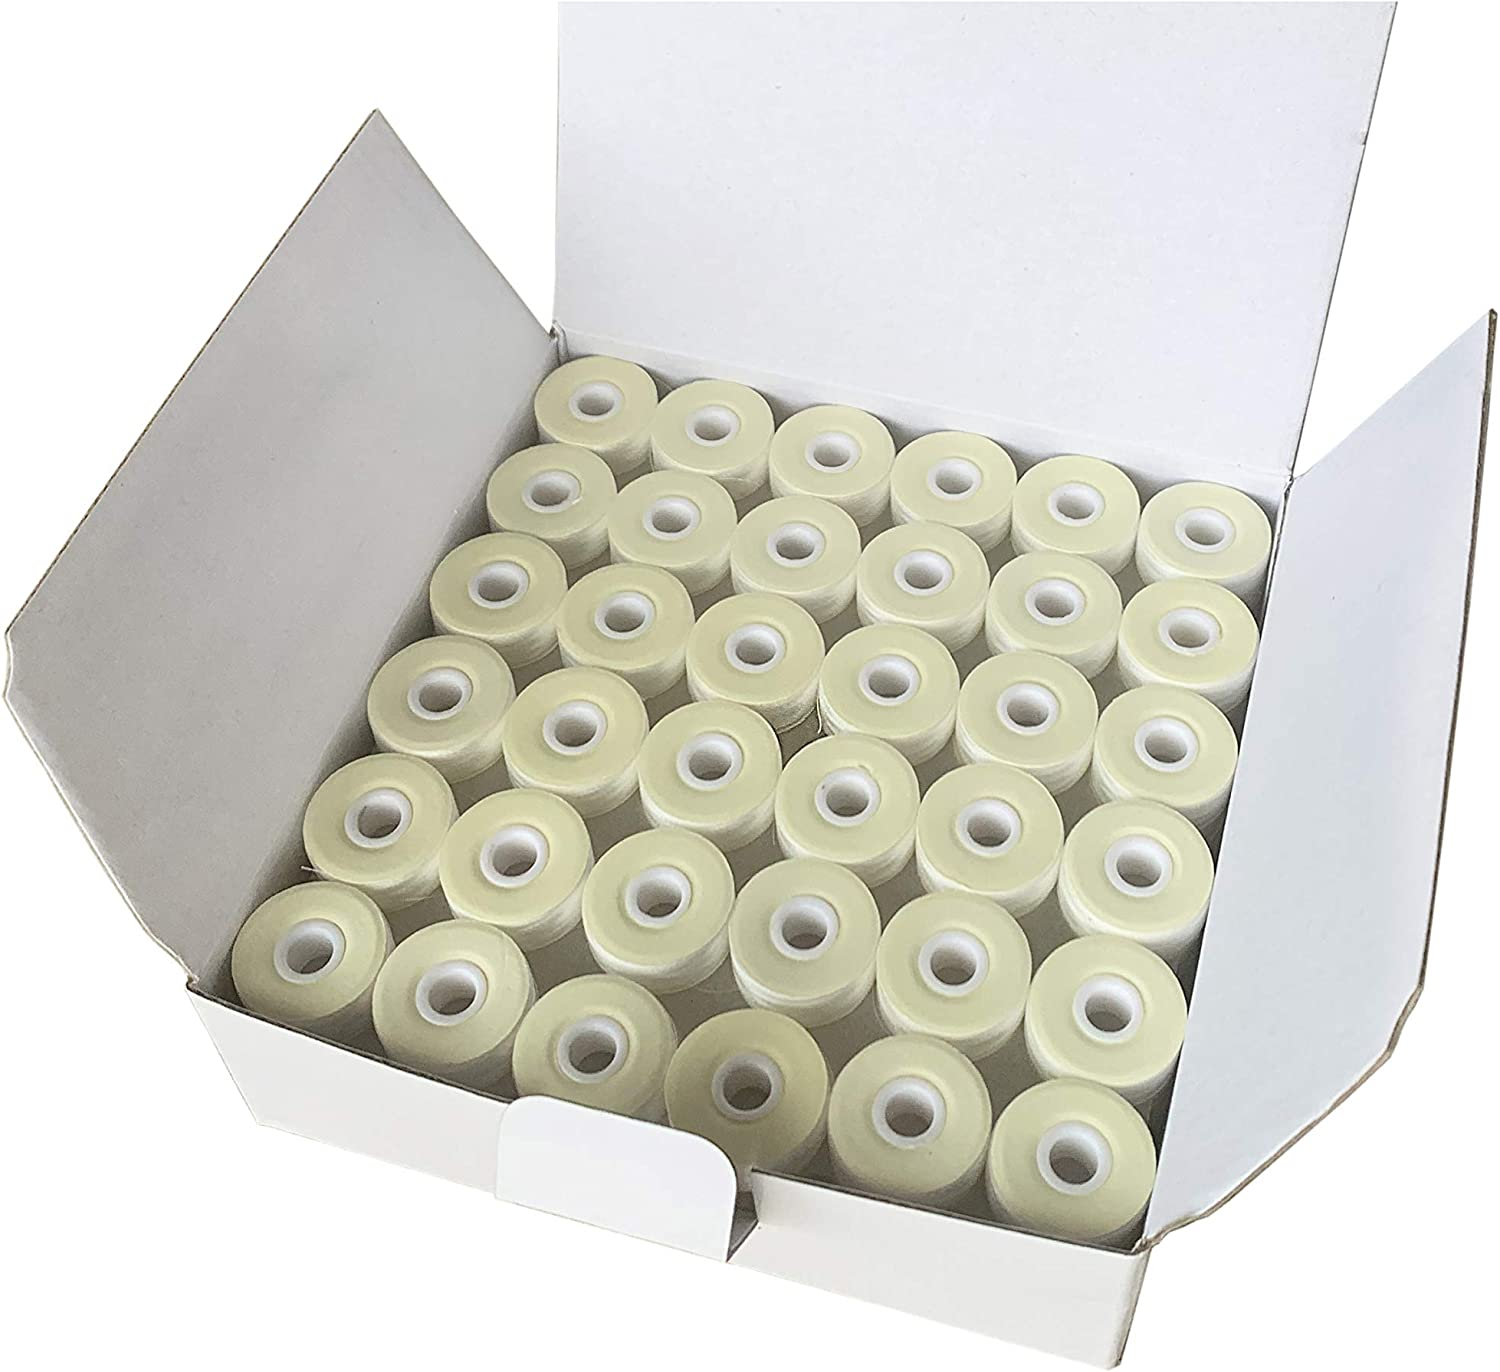 Plastic Sided Compatible with Brother Babylock Janome Embroidery Machines SA156 144 White PreWound Bobbins for Embroidery Machines Size A